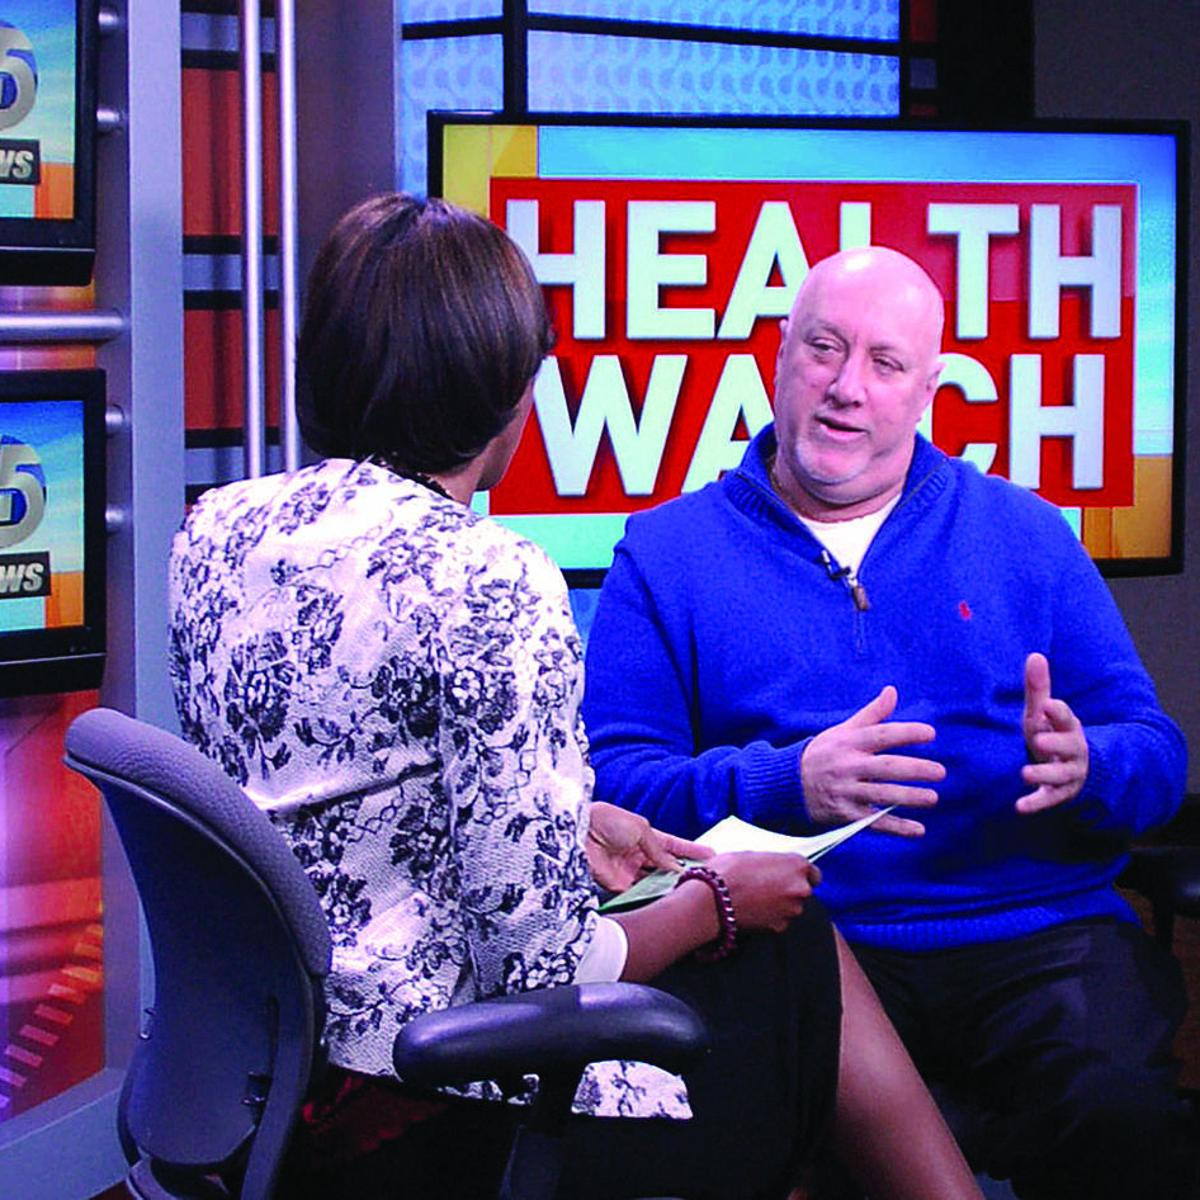 Maryland colon-cancer survivor uses past to help others